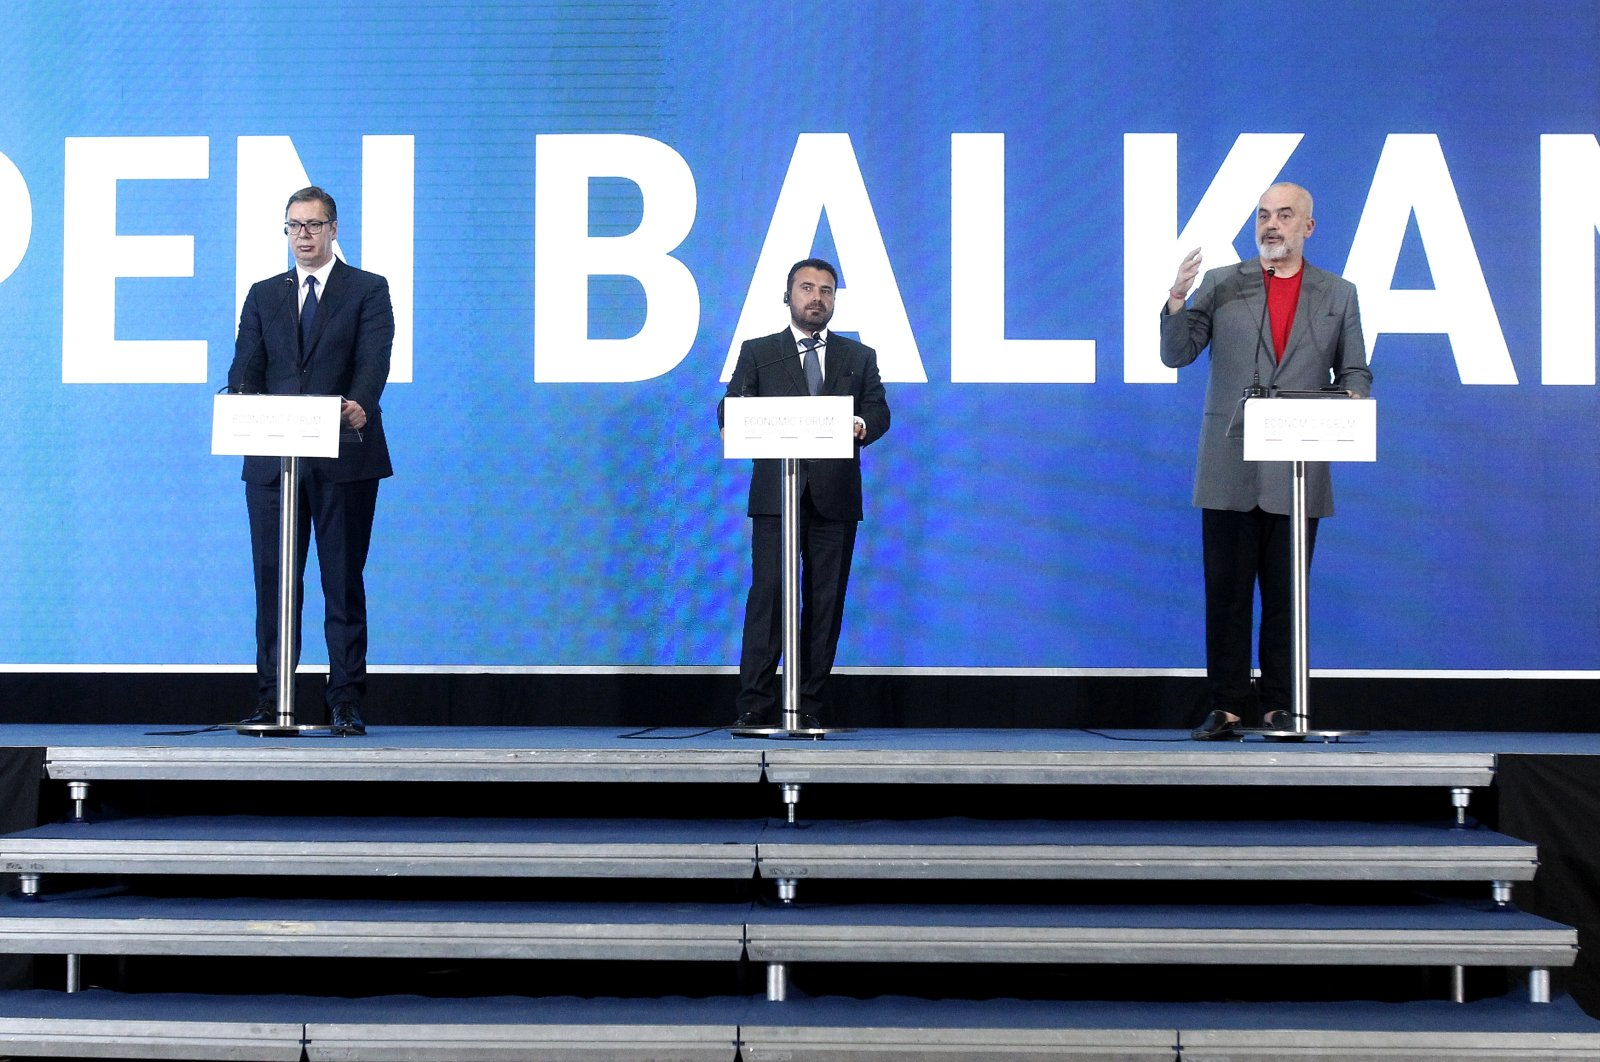 Serbia's President Aleksandar Vucic (left) North Macedonia's Prime Minister Zoran Zaev (center) and Albania's Prime Minister Edi Rama (right) hold a joint news conference just after the economic forum for regional cooperation in Skopje, North Macedonia, Thursday, July 29, 2021. (AP Photo)